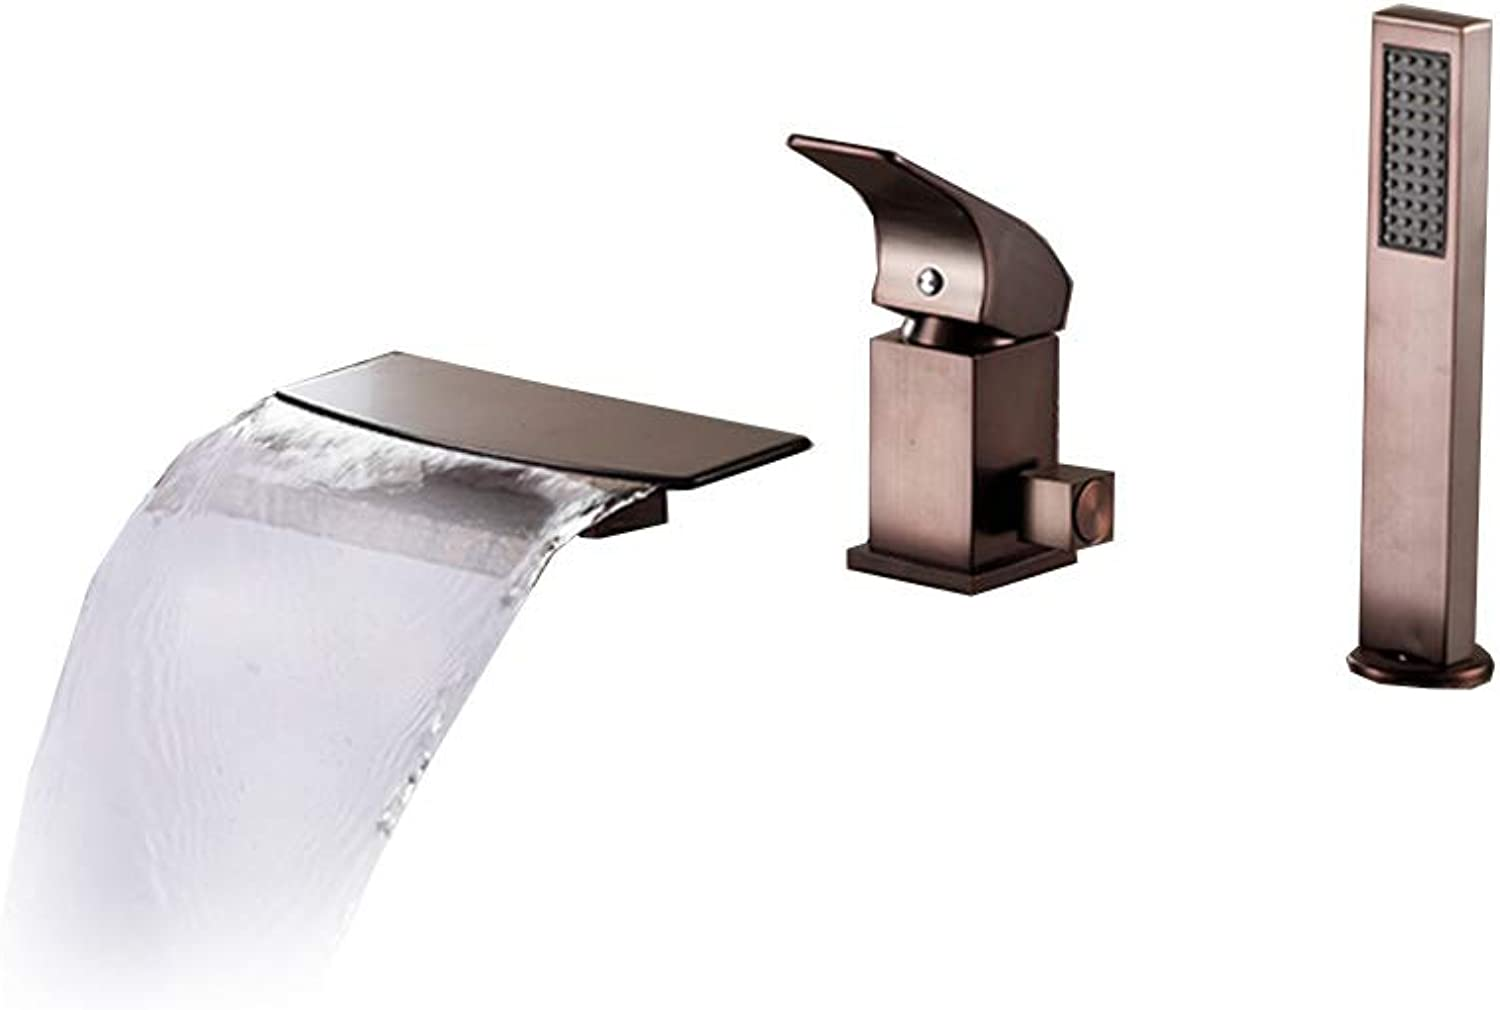 PLUMBER X True Waterfall Faucet With Handheld Shower Head 3-Piece Single Handle Health Brass Bath Bathroom Sink Mixer Cold Hot Tap, Oil-Rubbed Bronze